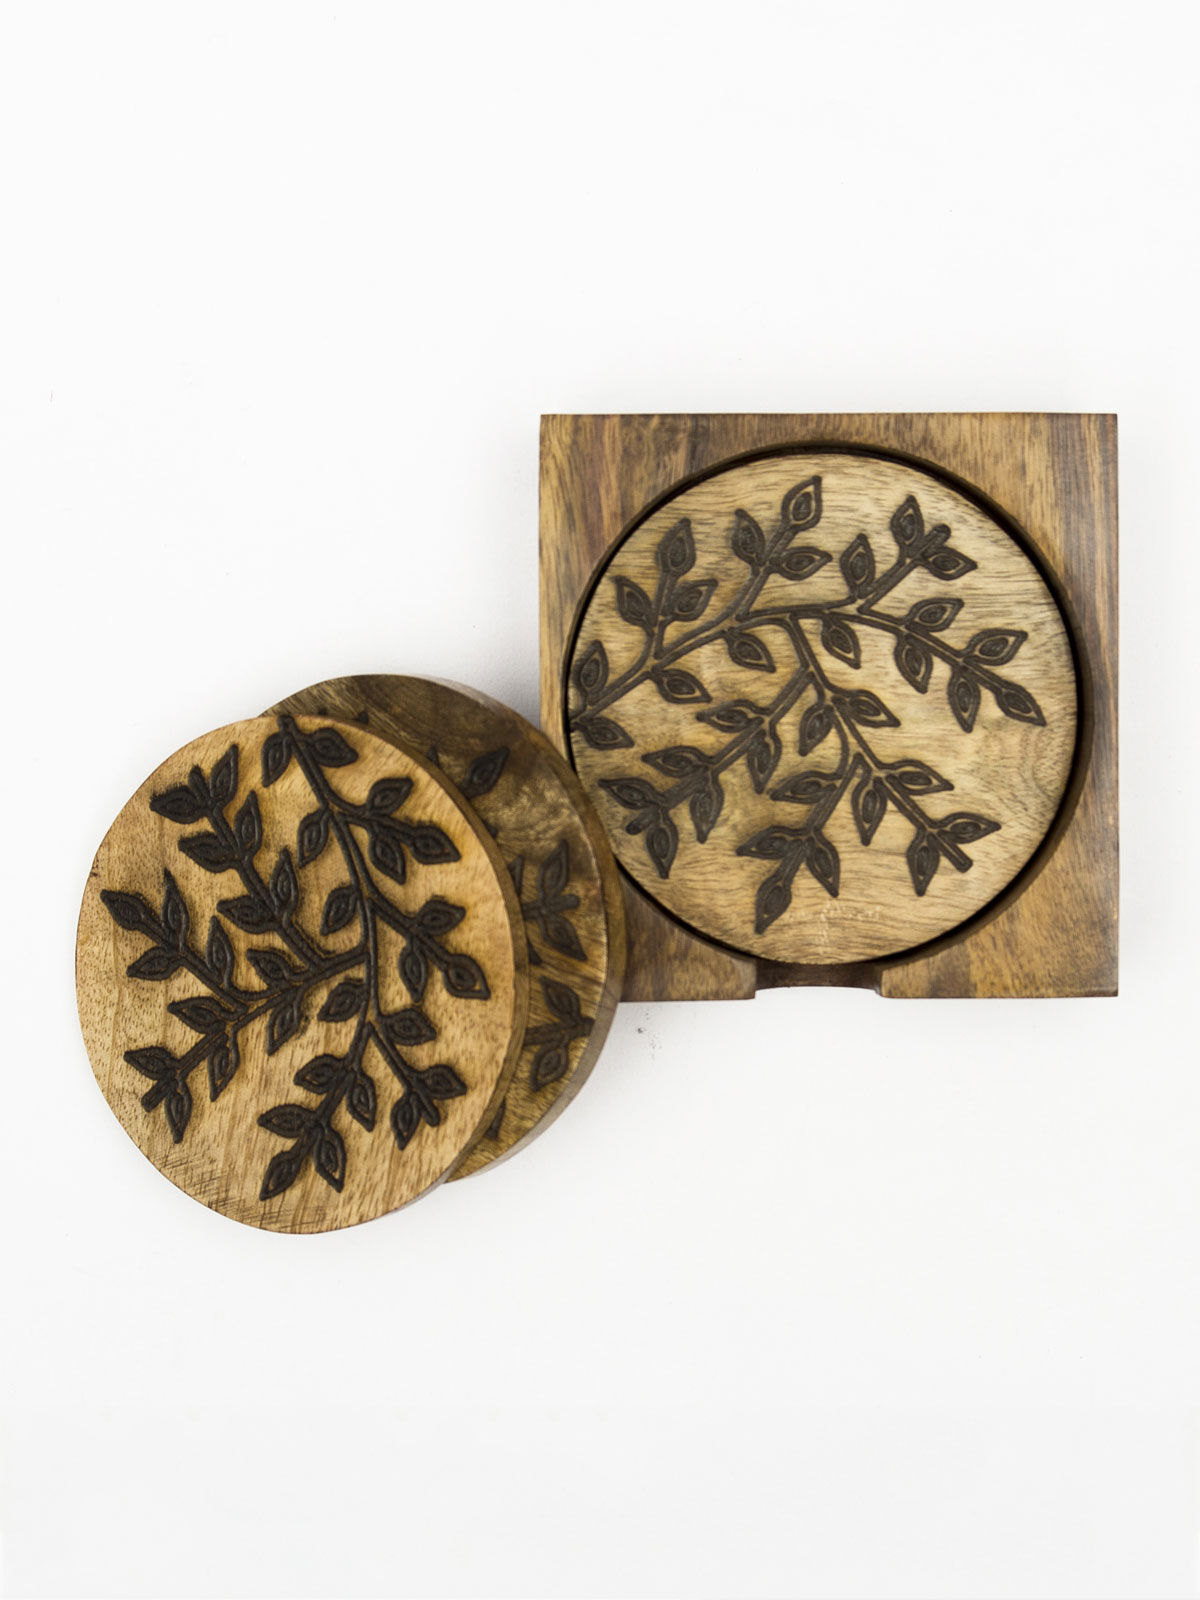 Floral Design Coasters in stand